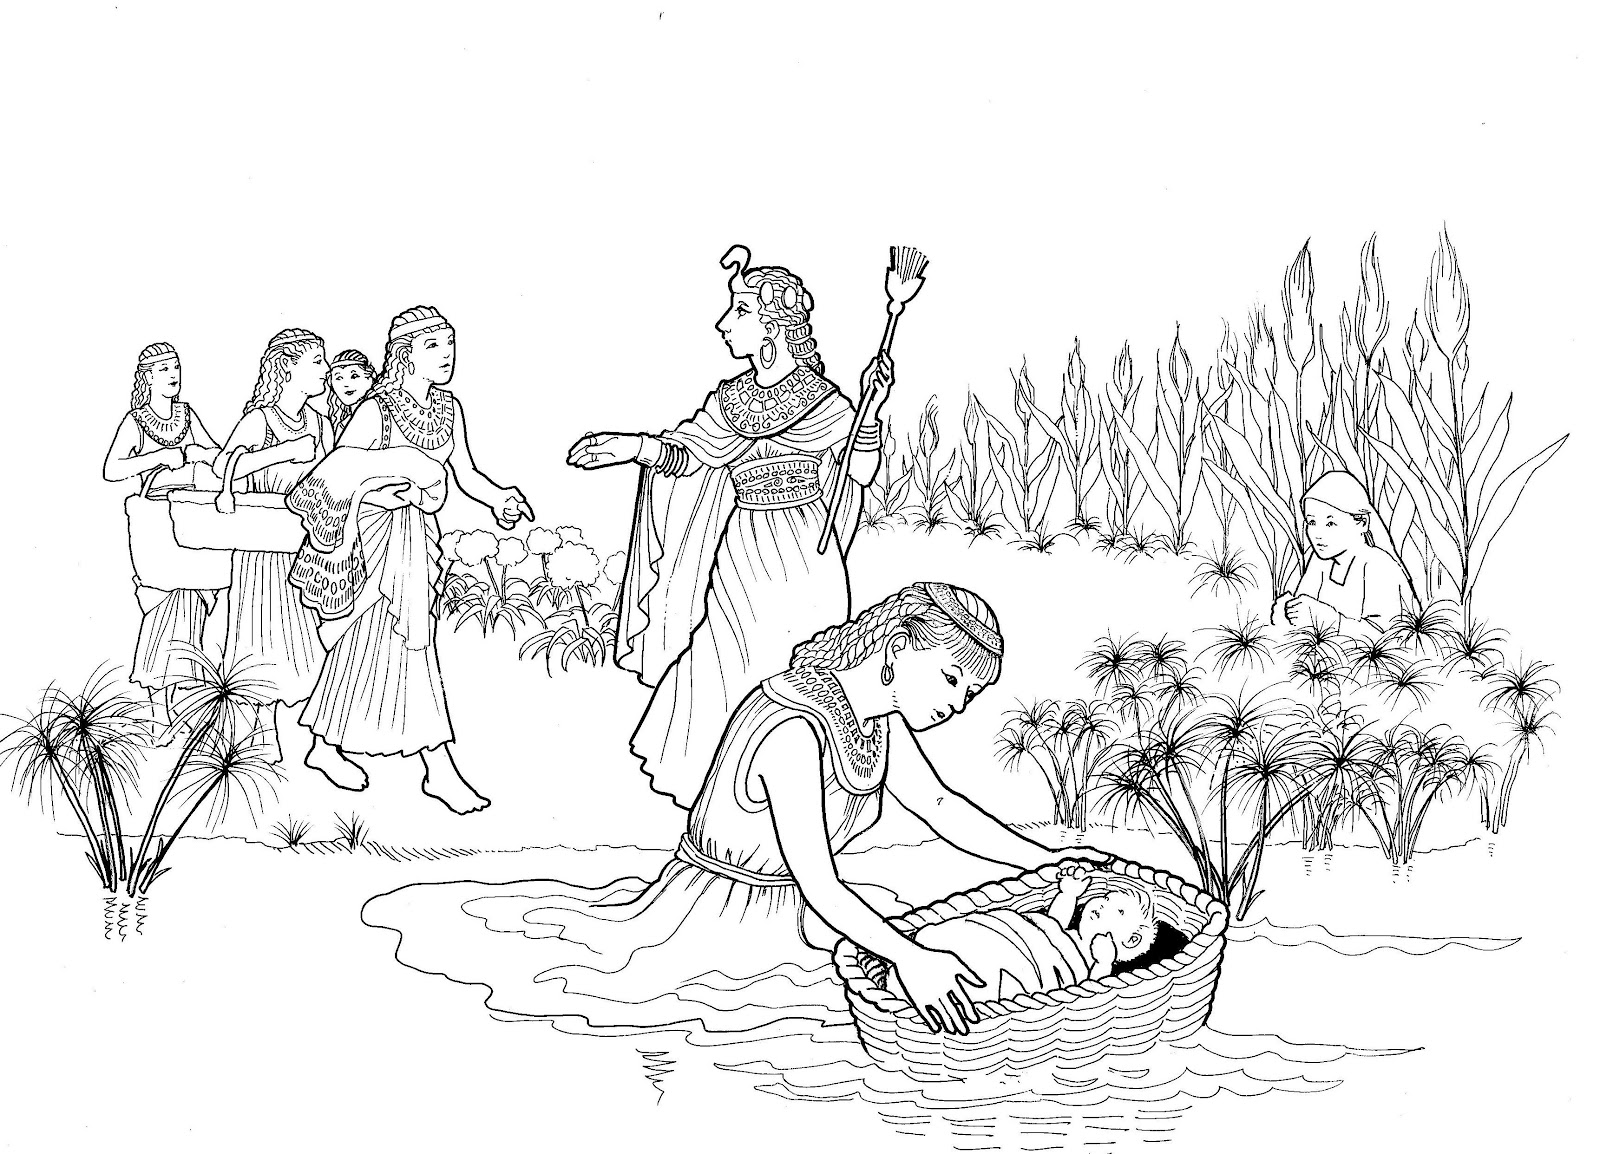 childrens bible stories coloring pages moses | Make a joyful color: Moses and Pharoah's daughter